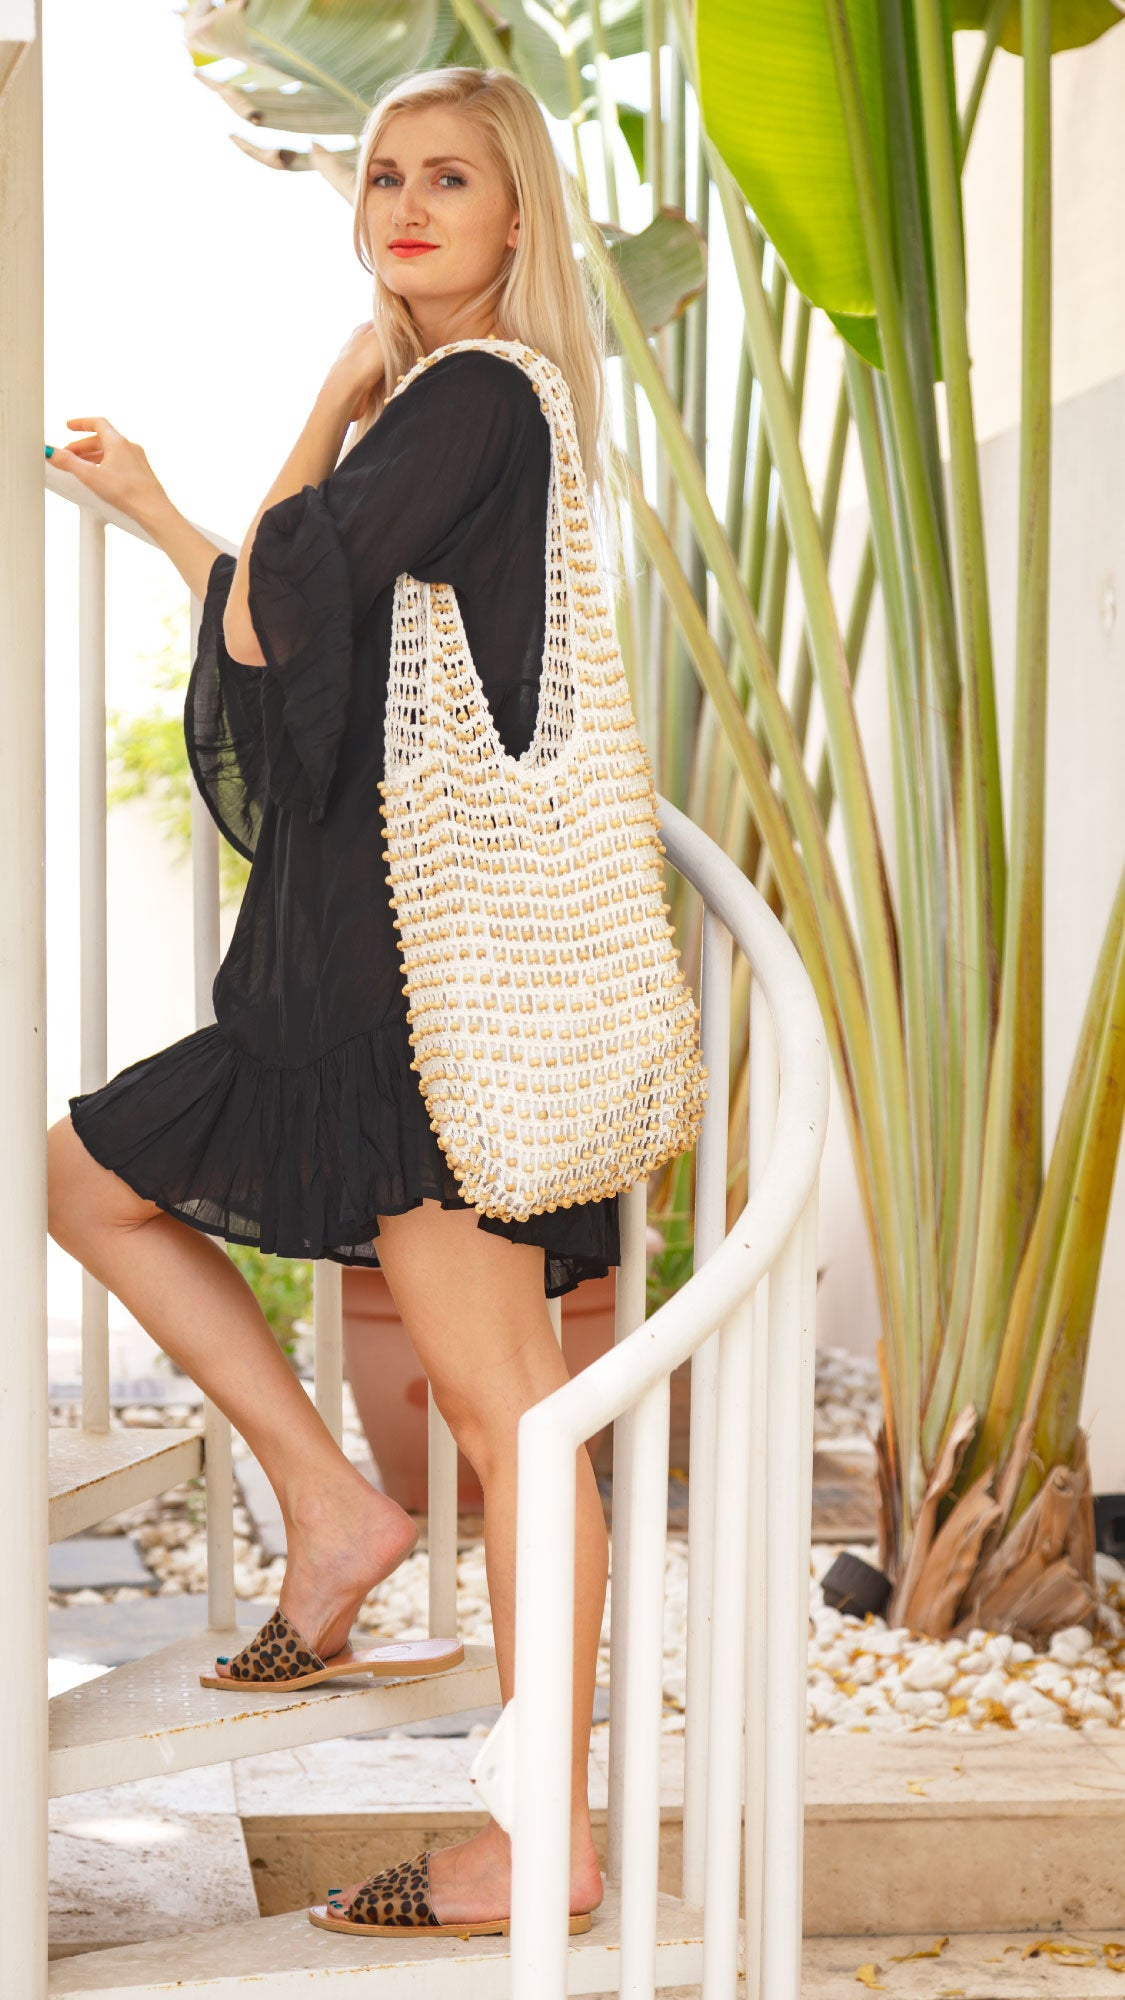 Beaded Shoulder Bag in Vanilla Cream Cotton - Kardia